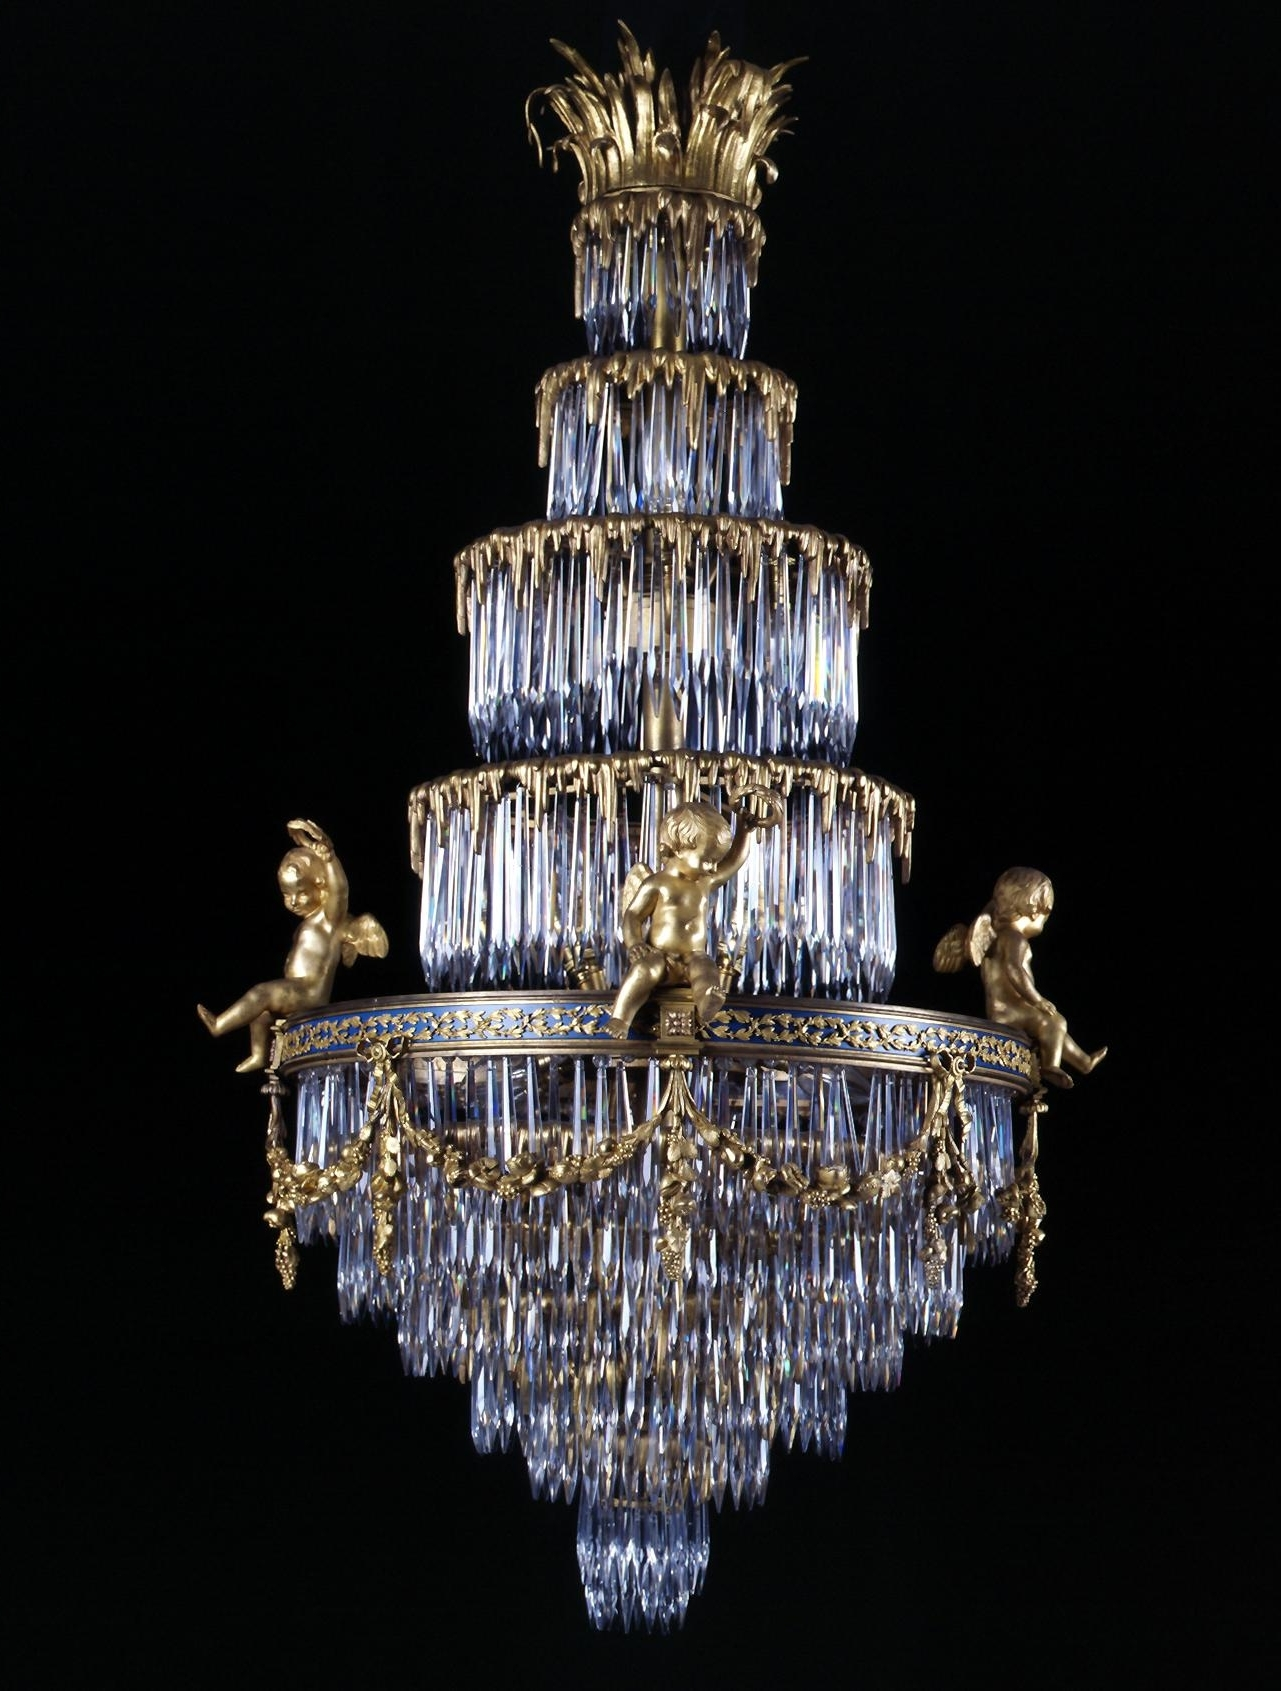 Baccarat A Rare Crystal And Gilt Bronze Waterfall Chandelier French Throughout Recent Vintage French Chandeliers (View 3 of 20)